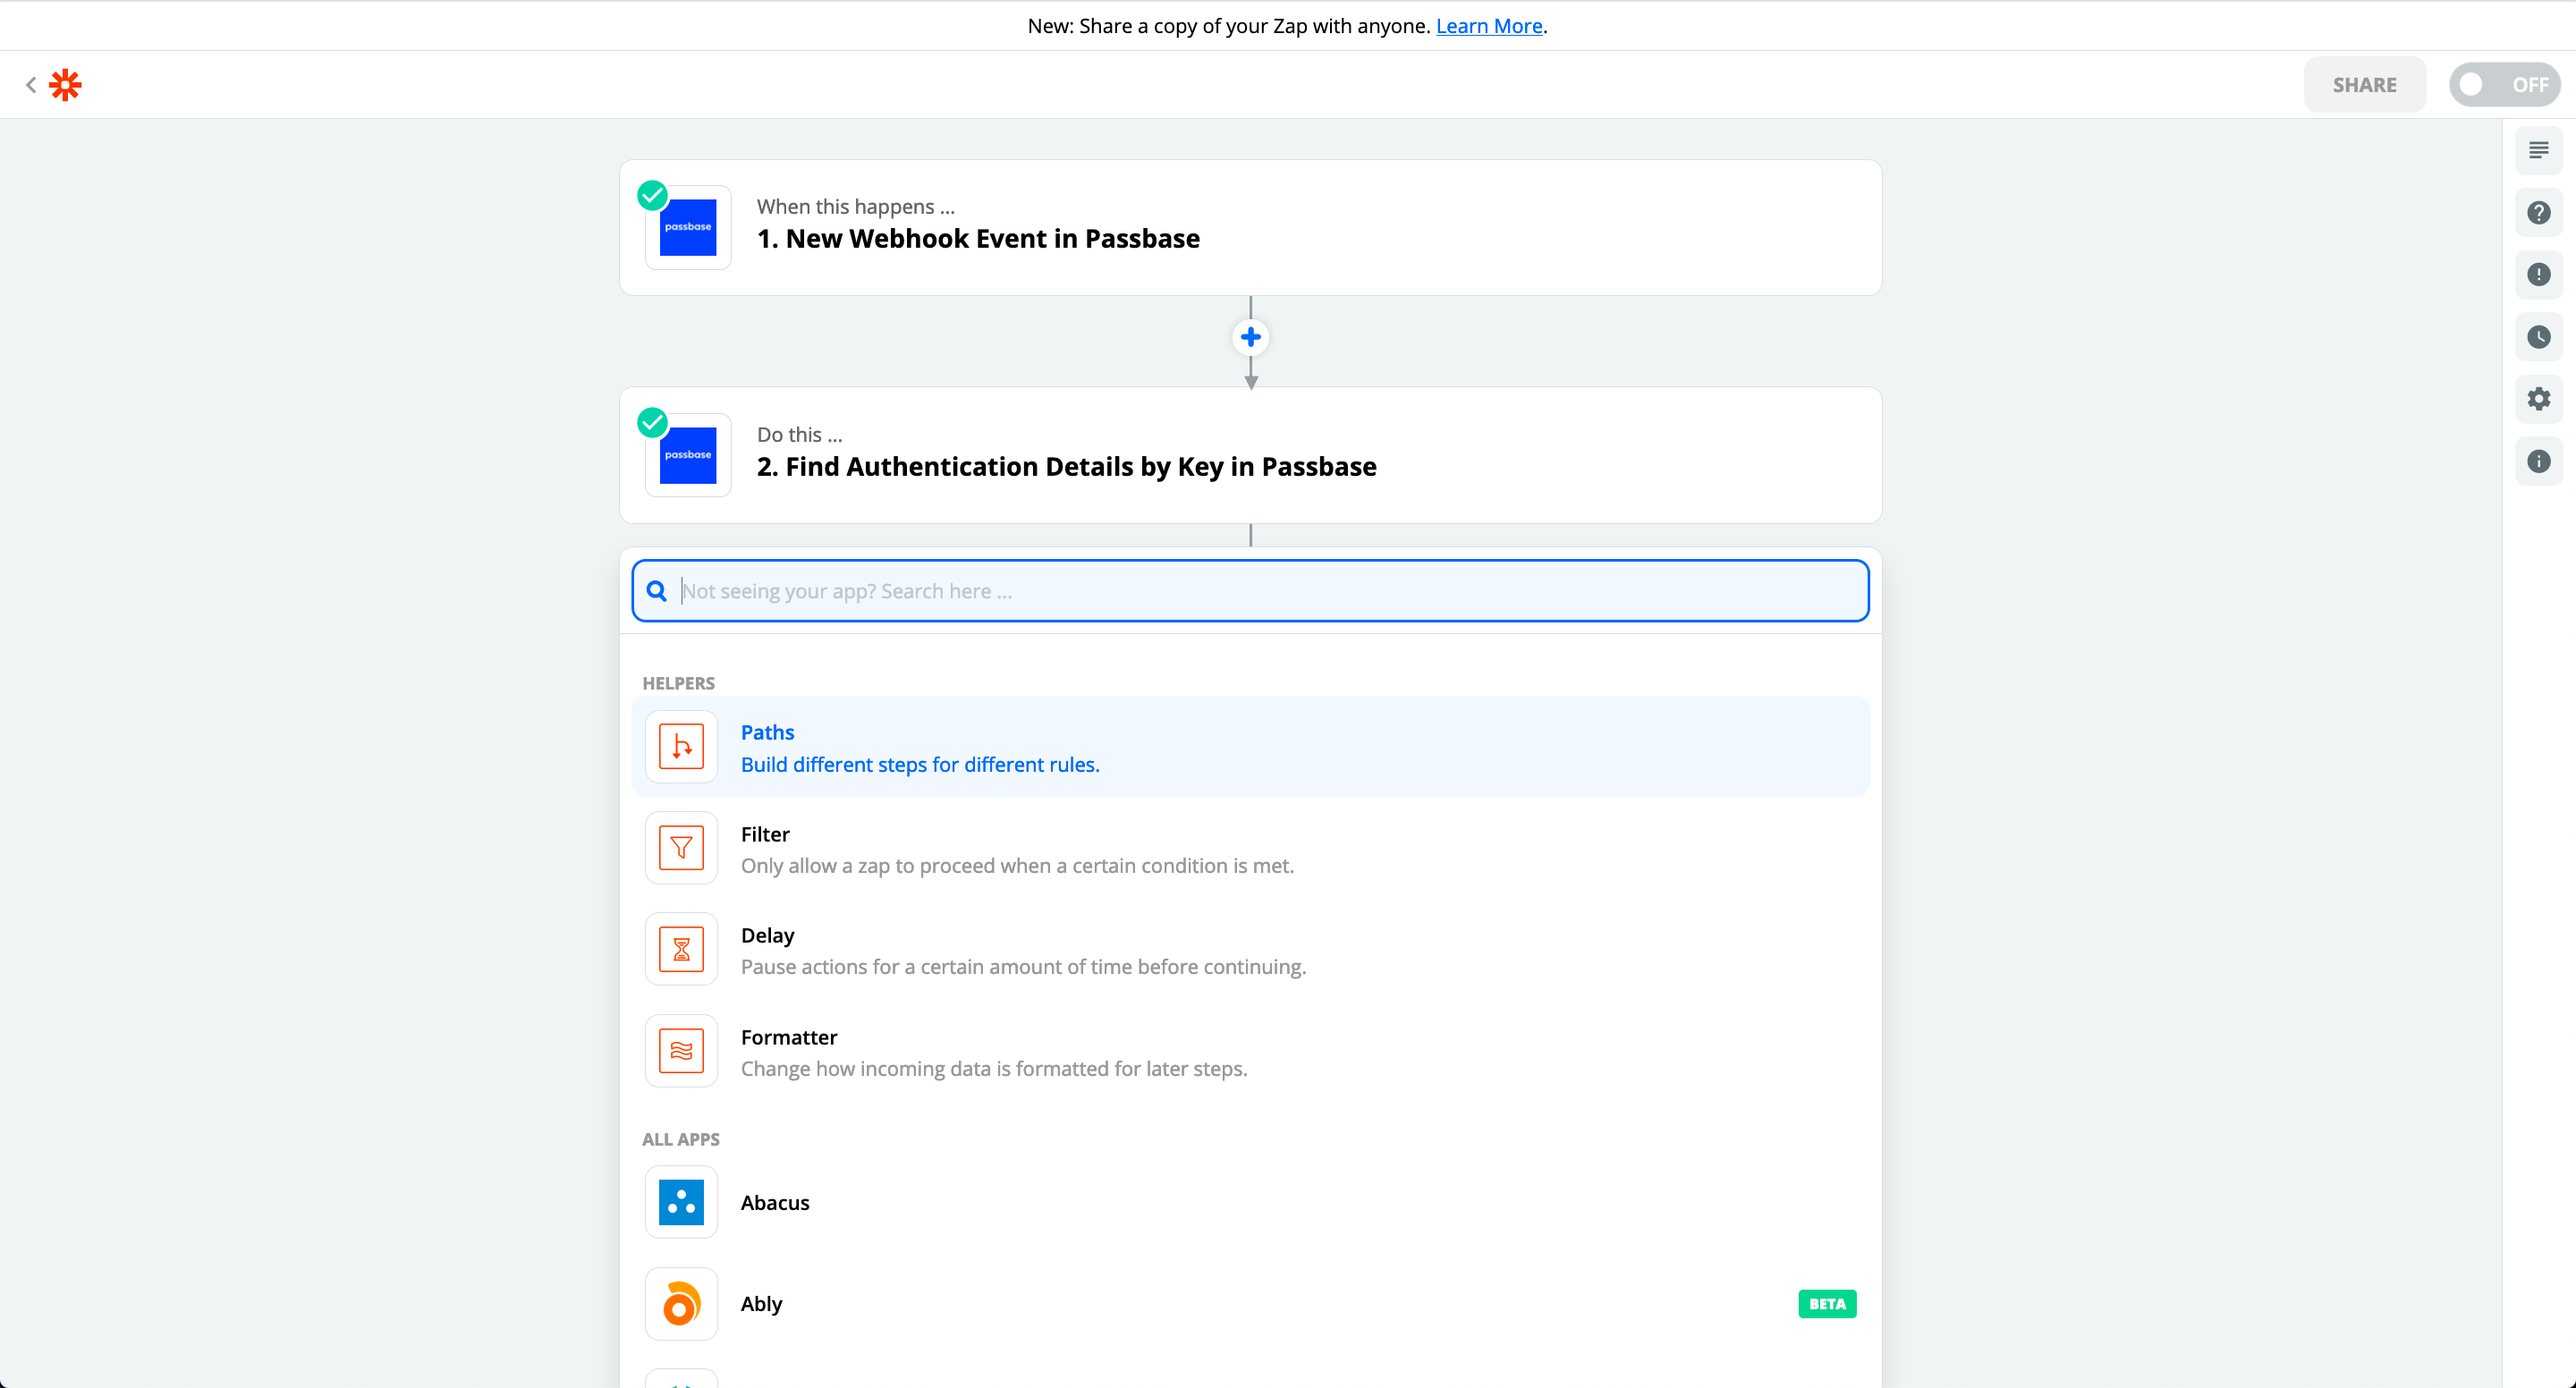 A Zapier screenshot of additional automation workflow possibilities with Passbase